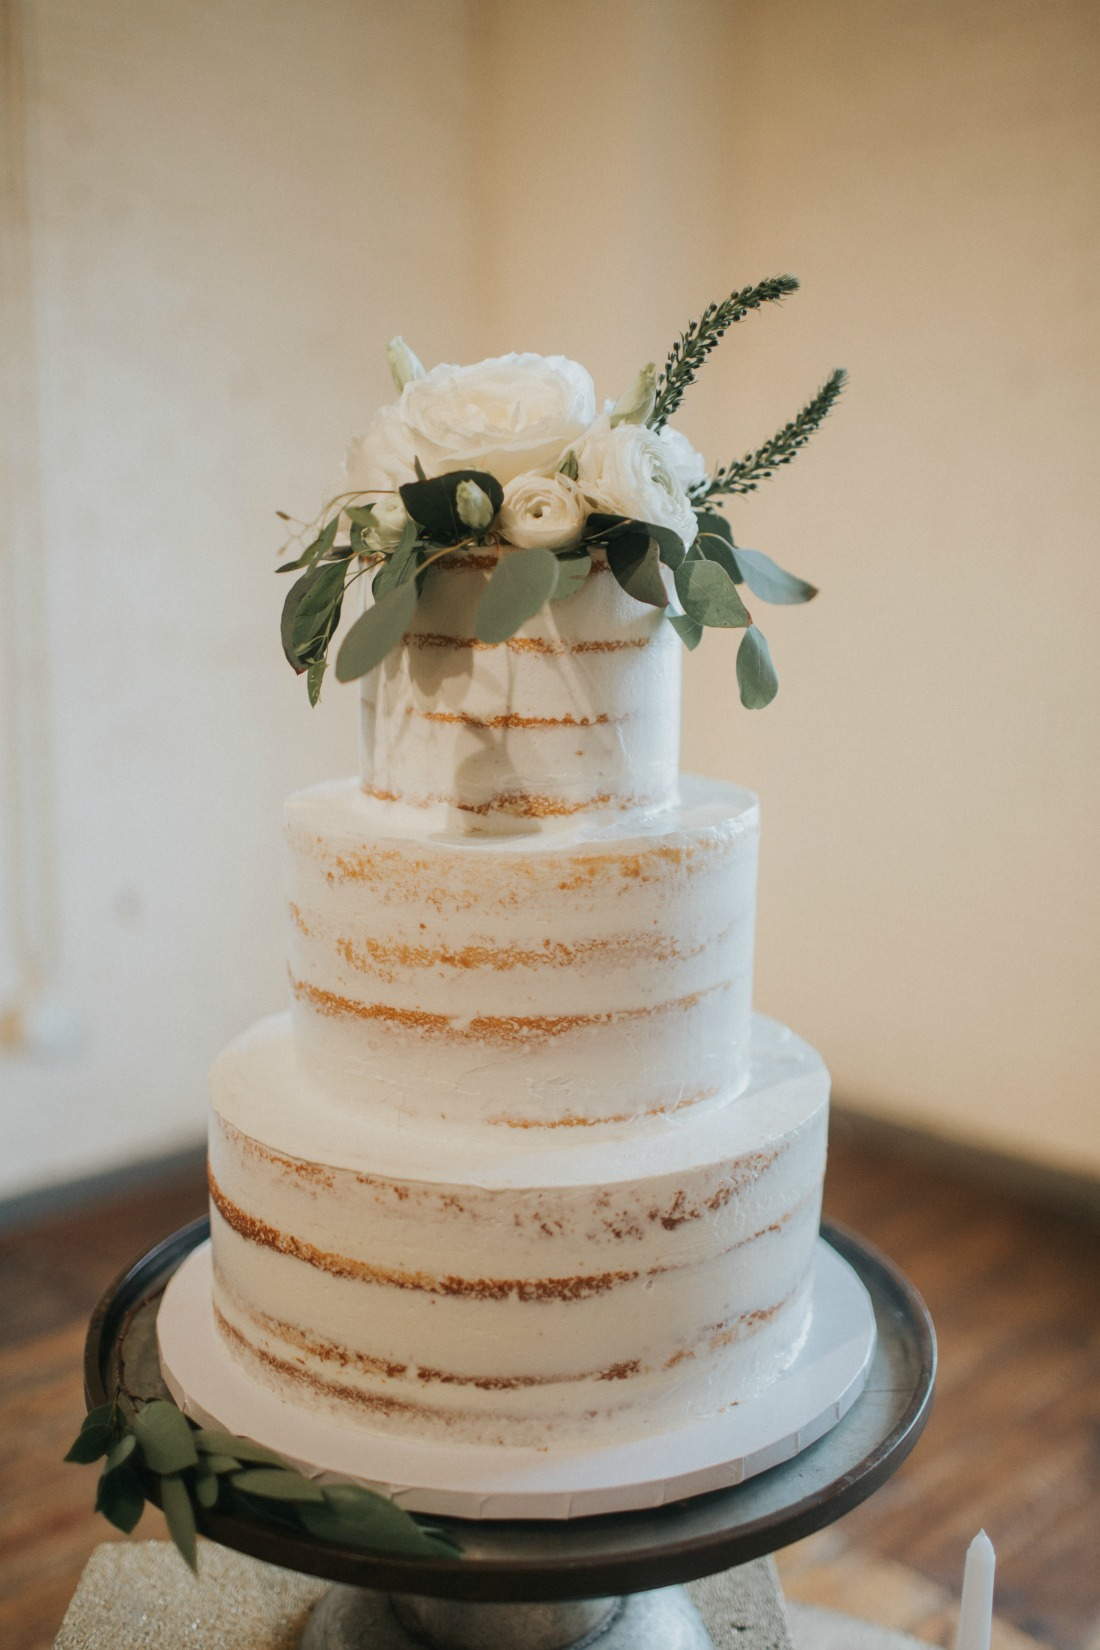 Check out the Fall Wedding Cake Trends for this season.